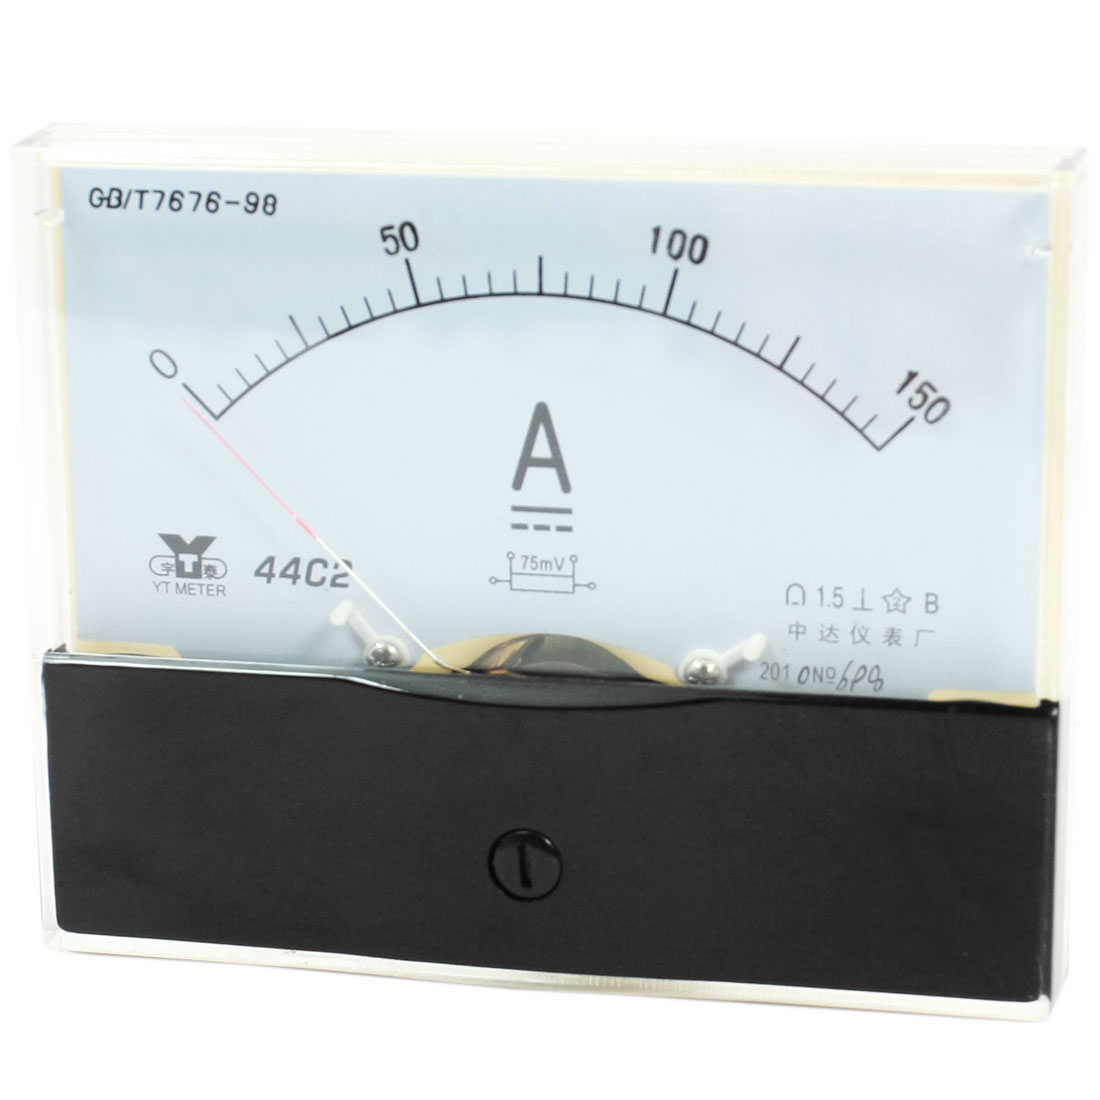 Rectangle Measurement Tool Analog Panel Ammeter Gauge DC 0 - 150A Measuring Range 44C2